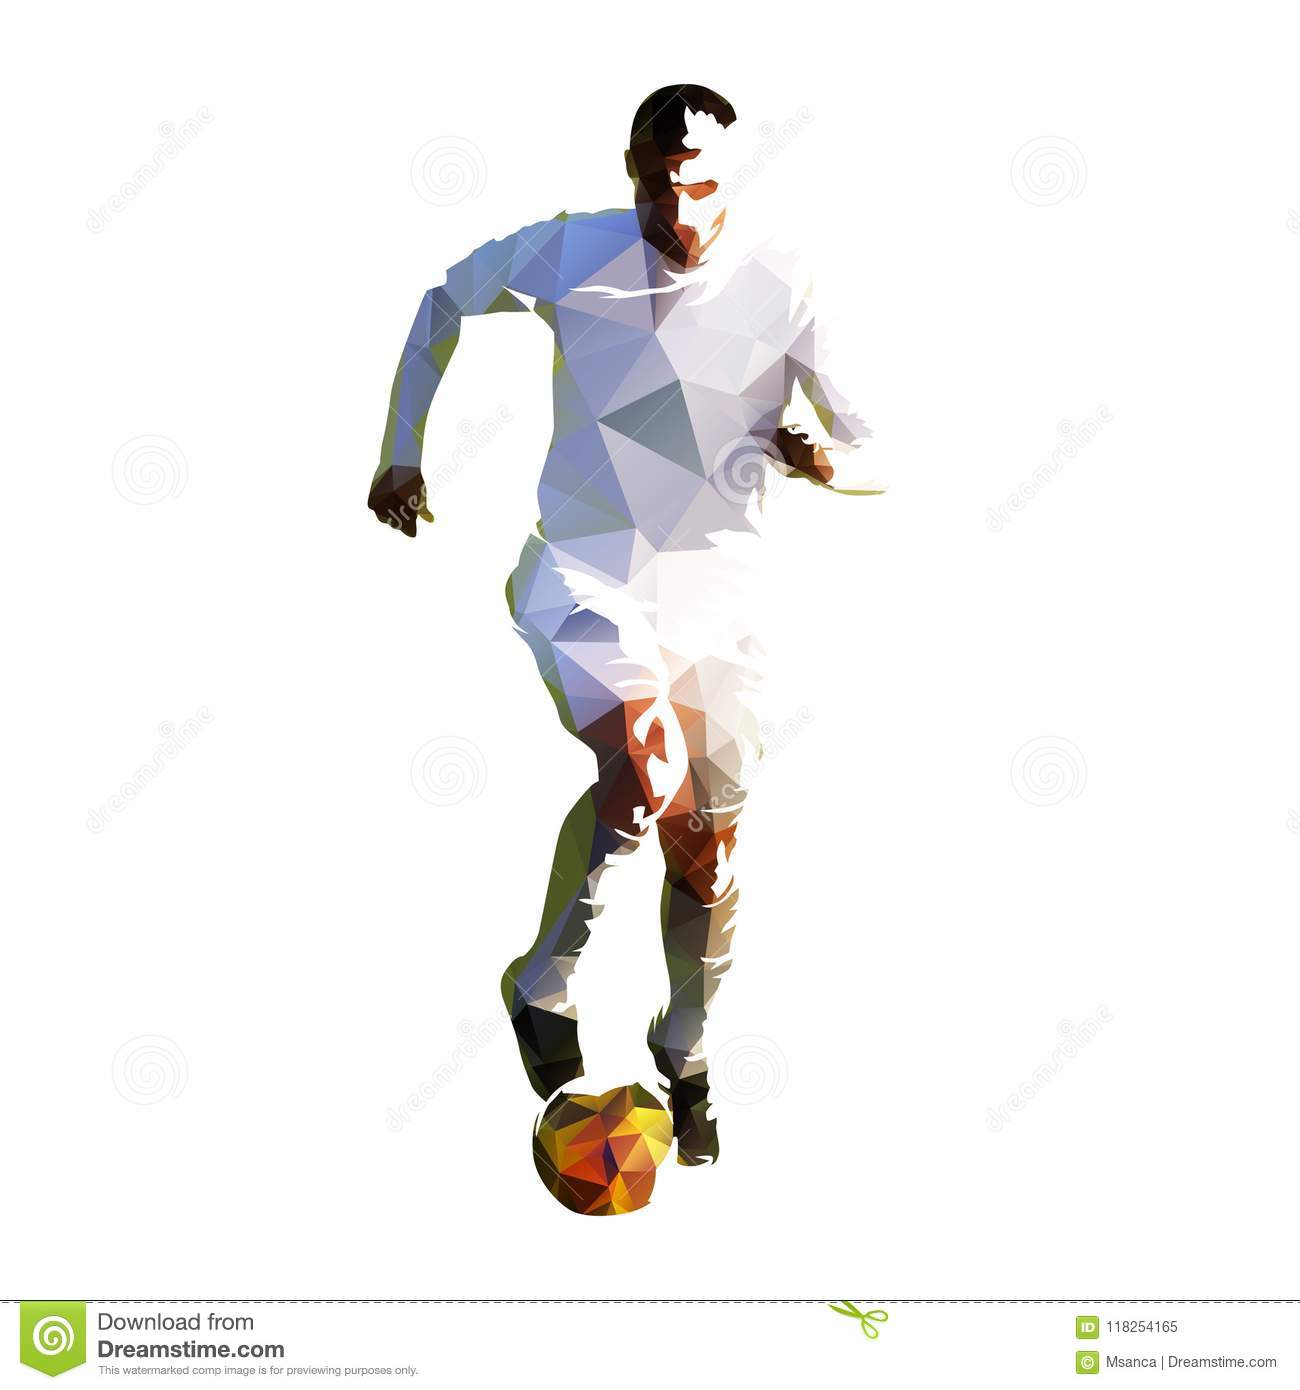 3a7801f70 Polygonal Soccer Player In White Jersey Running With Ball Stock ...